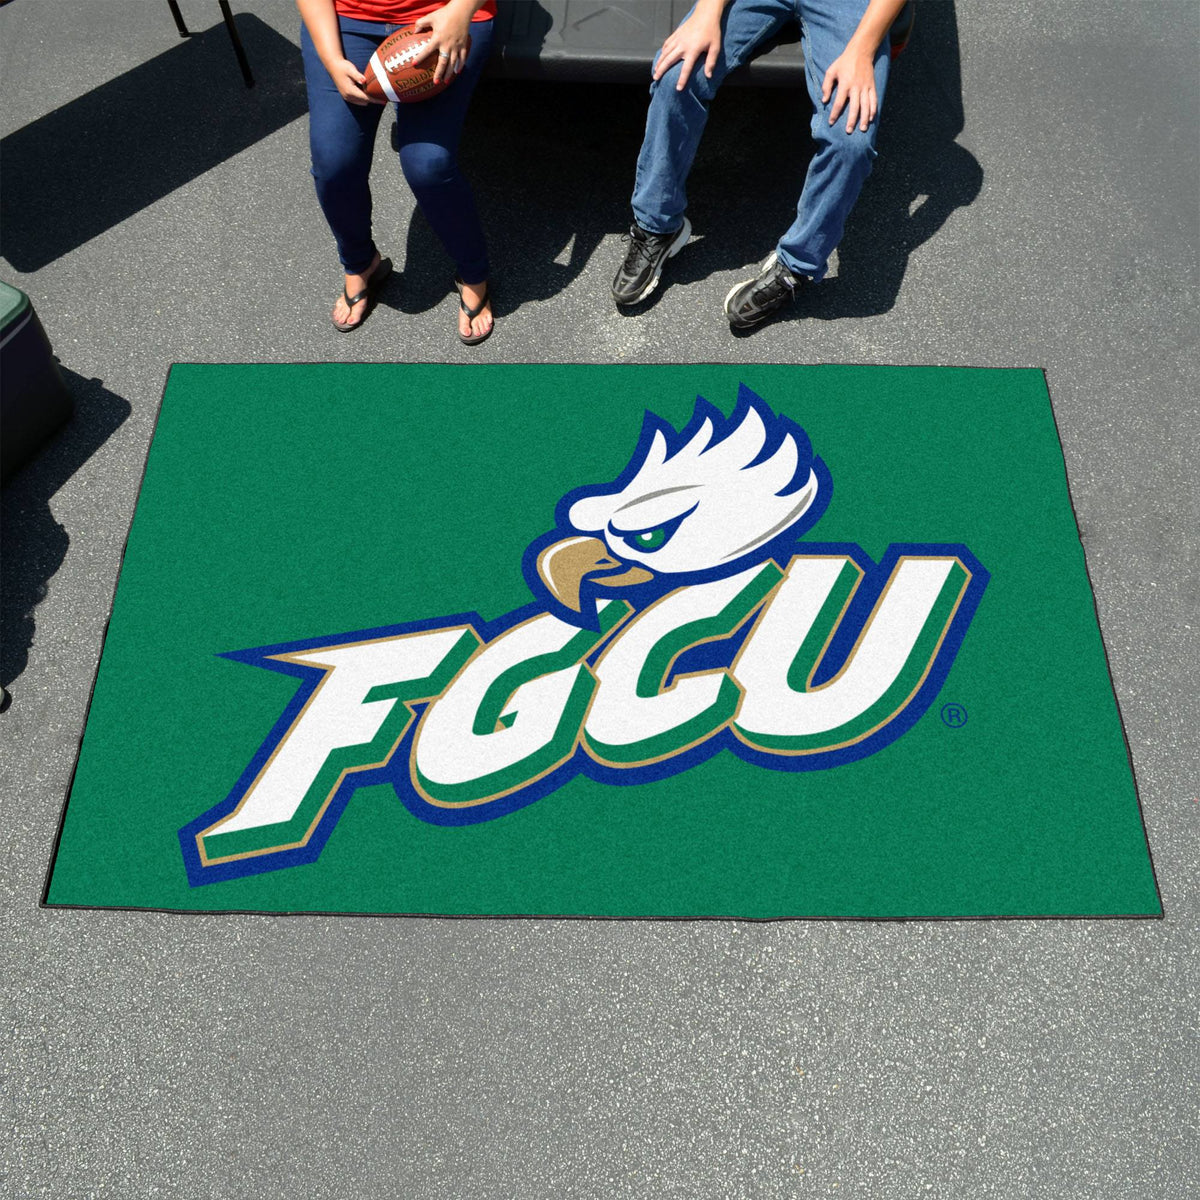 Collegiate - Ulti-Mat: A - L Collegiate Mats, Rectangular Mats, Ulti-Mat, Collegiate, Home Fan Mats Florida Gulf Coast